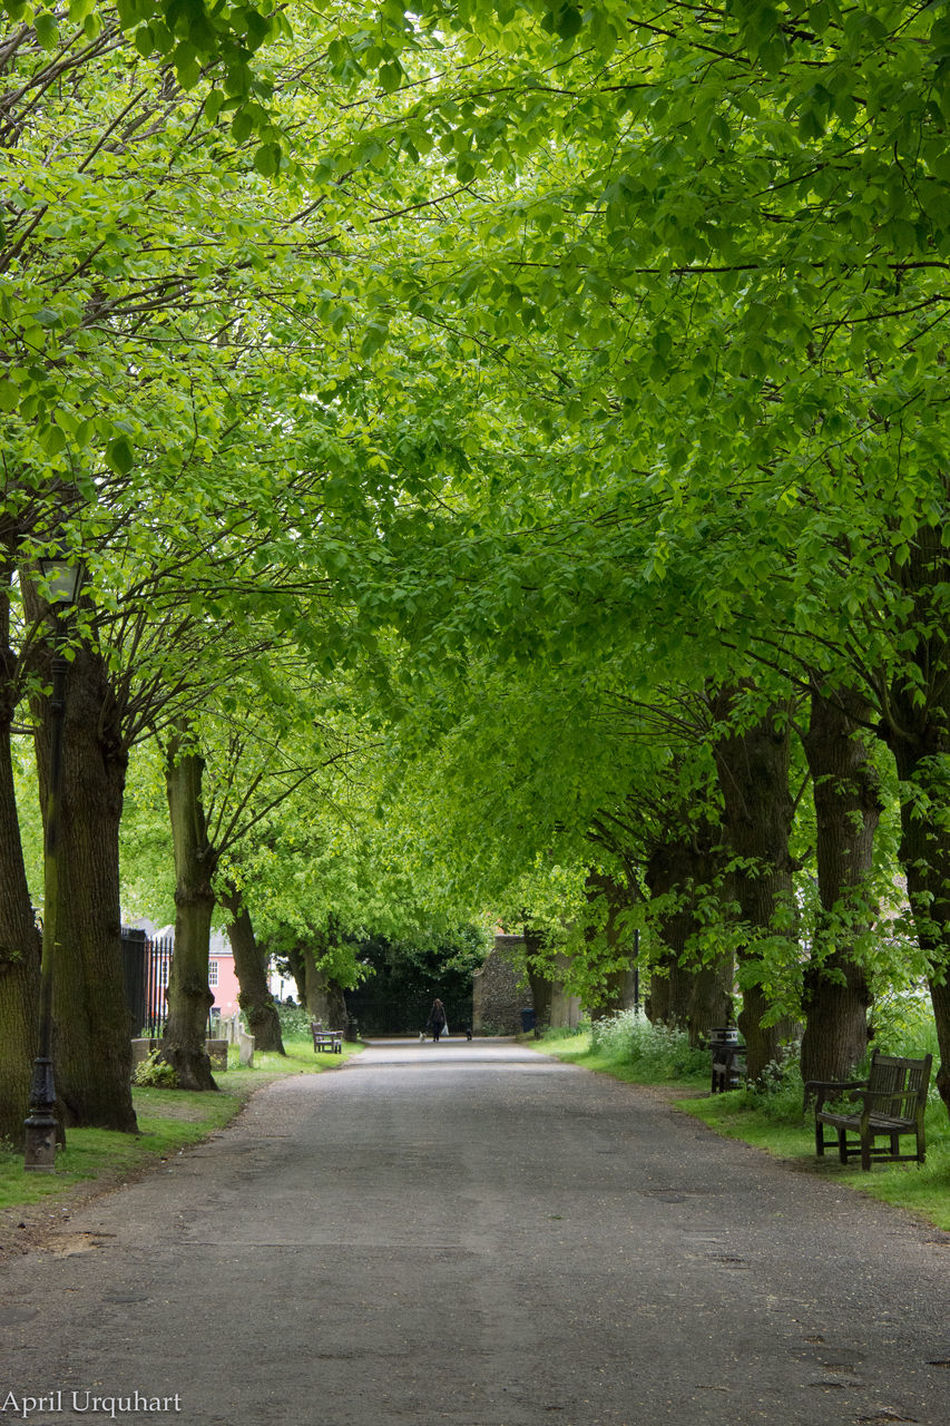 Peaceful tree lined path Nature Outdoors Peaceful Peaceful View Road The Way Forward Tree Tree Lined Path Tree Lined Road Trees